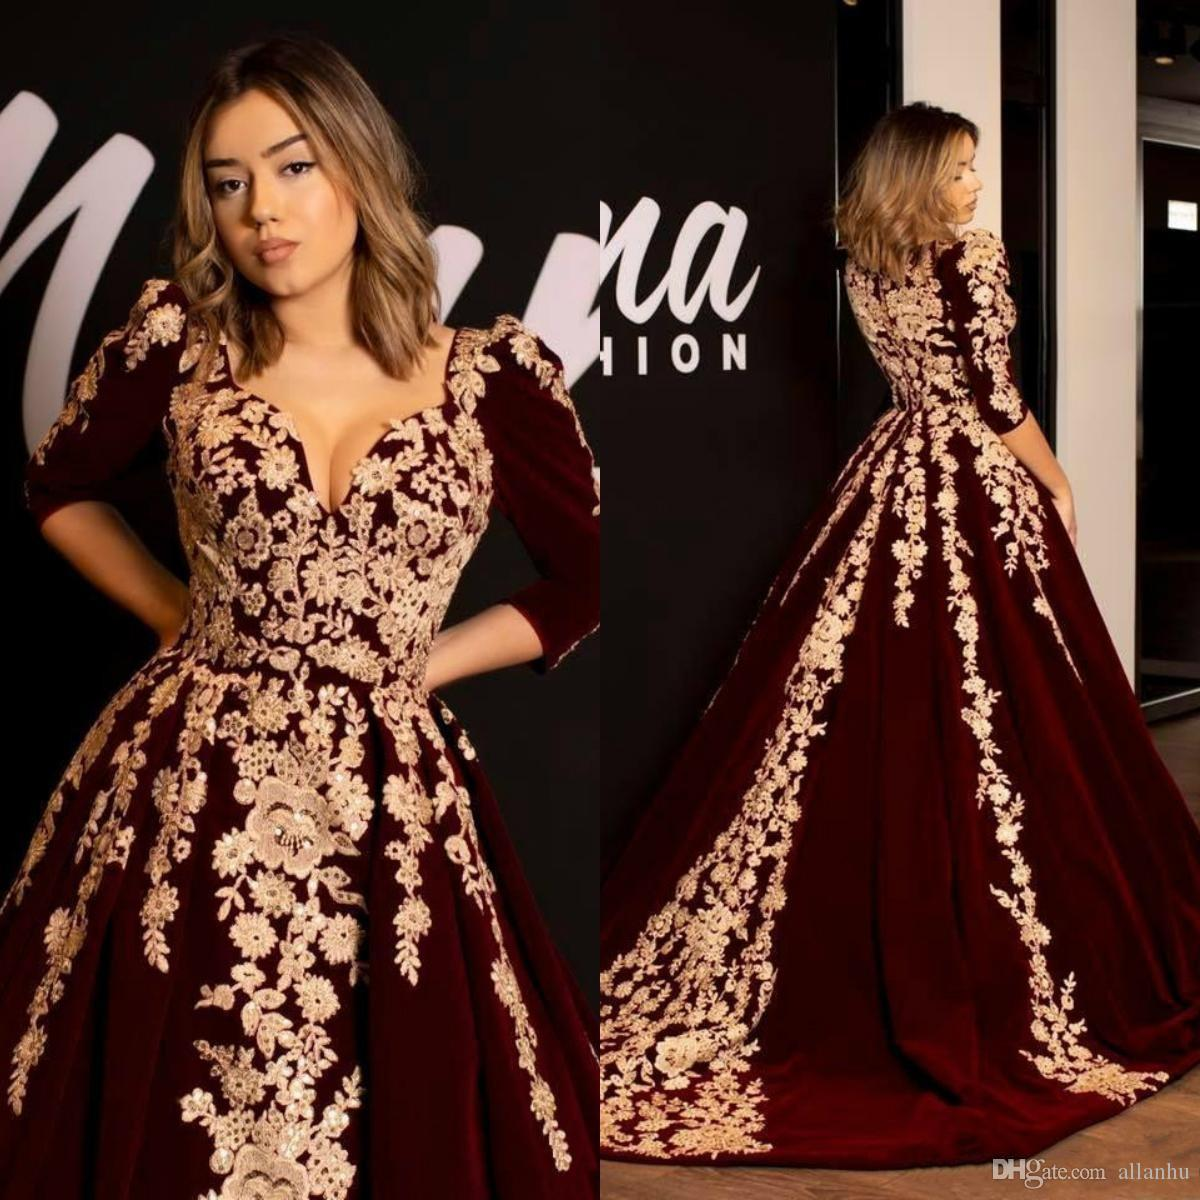 Weddings & Events Black Lace Arabic Evening Dress V Neck Applique Formal Evening Gowns Robe De Soiree 2019 Hot Sale Beadeds Kaftans Prom Dresses